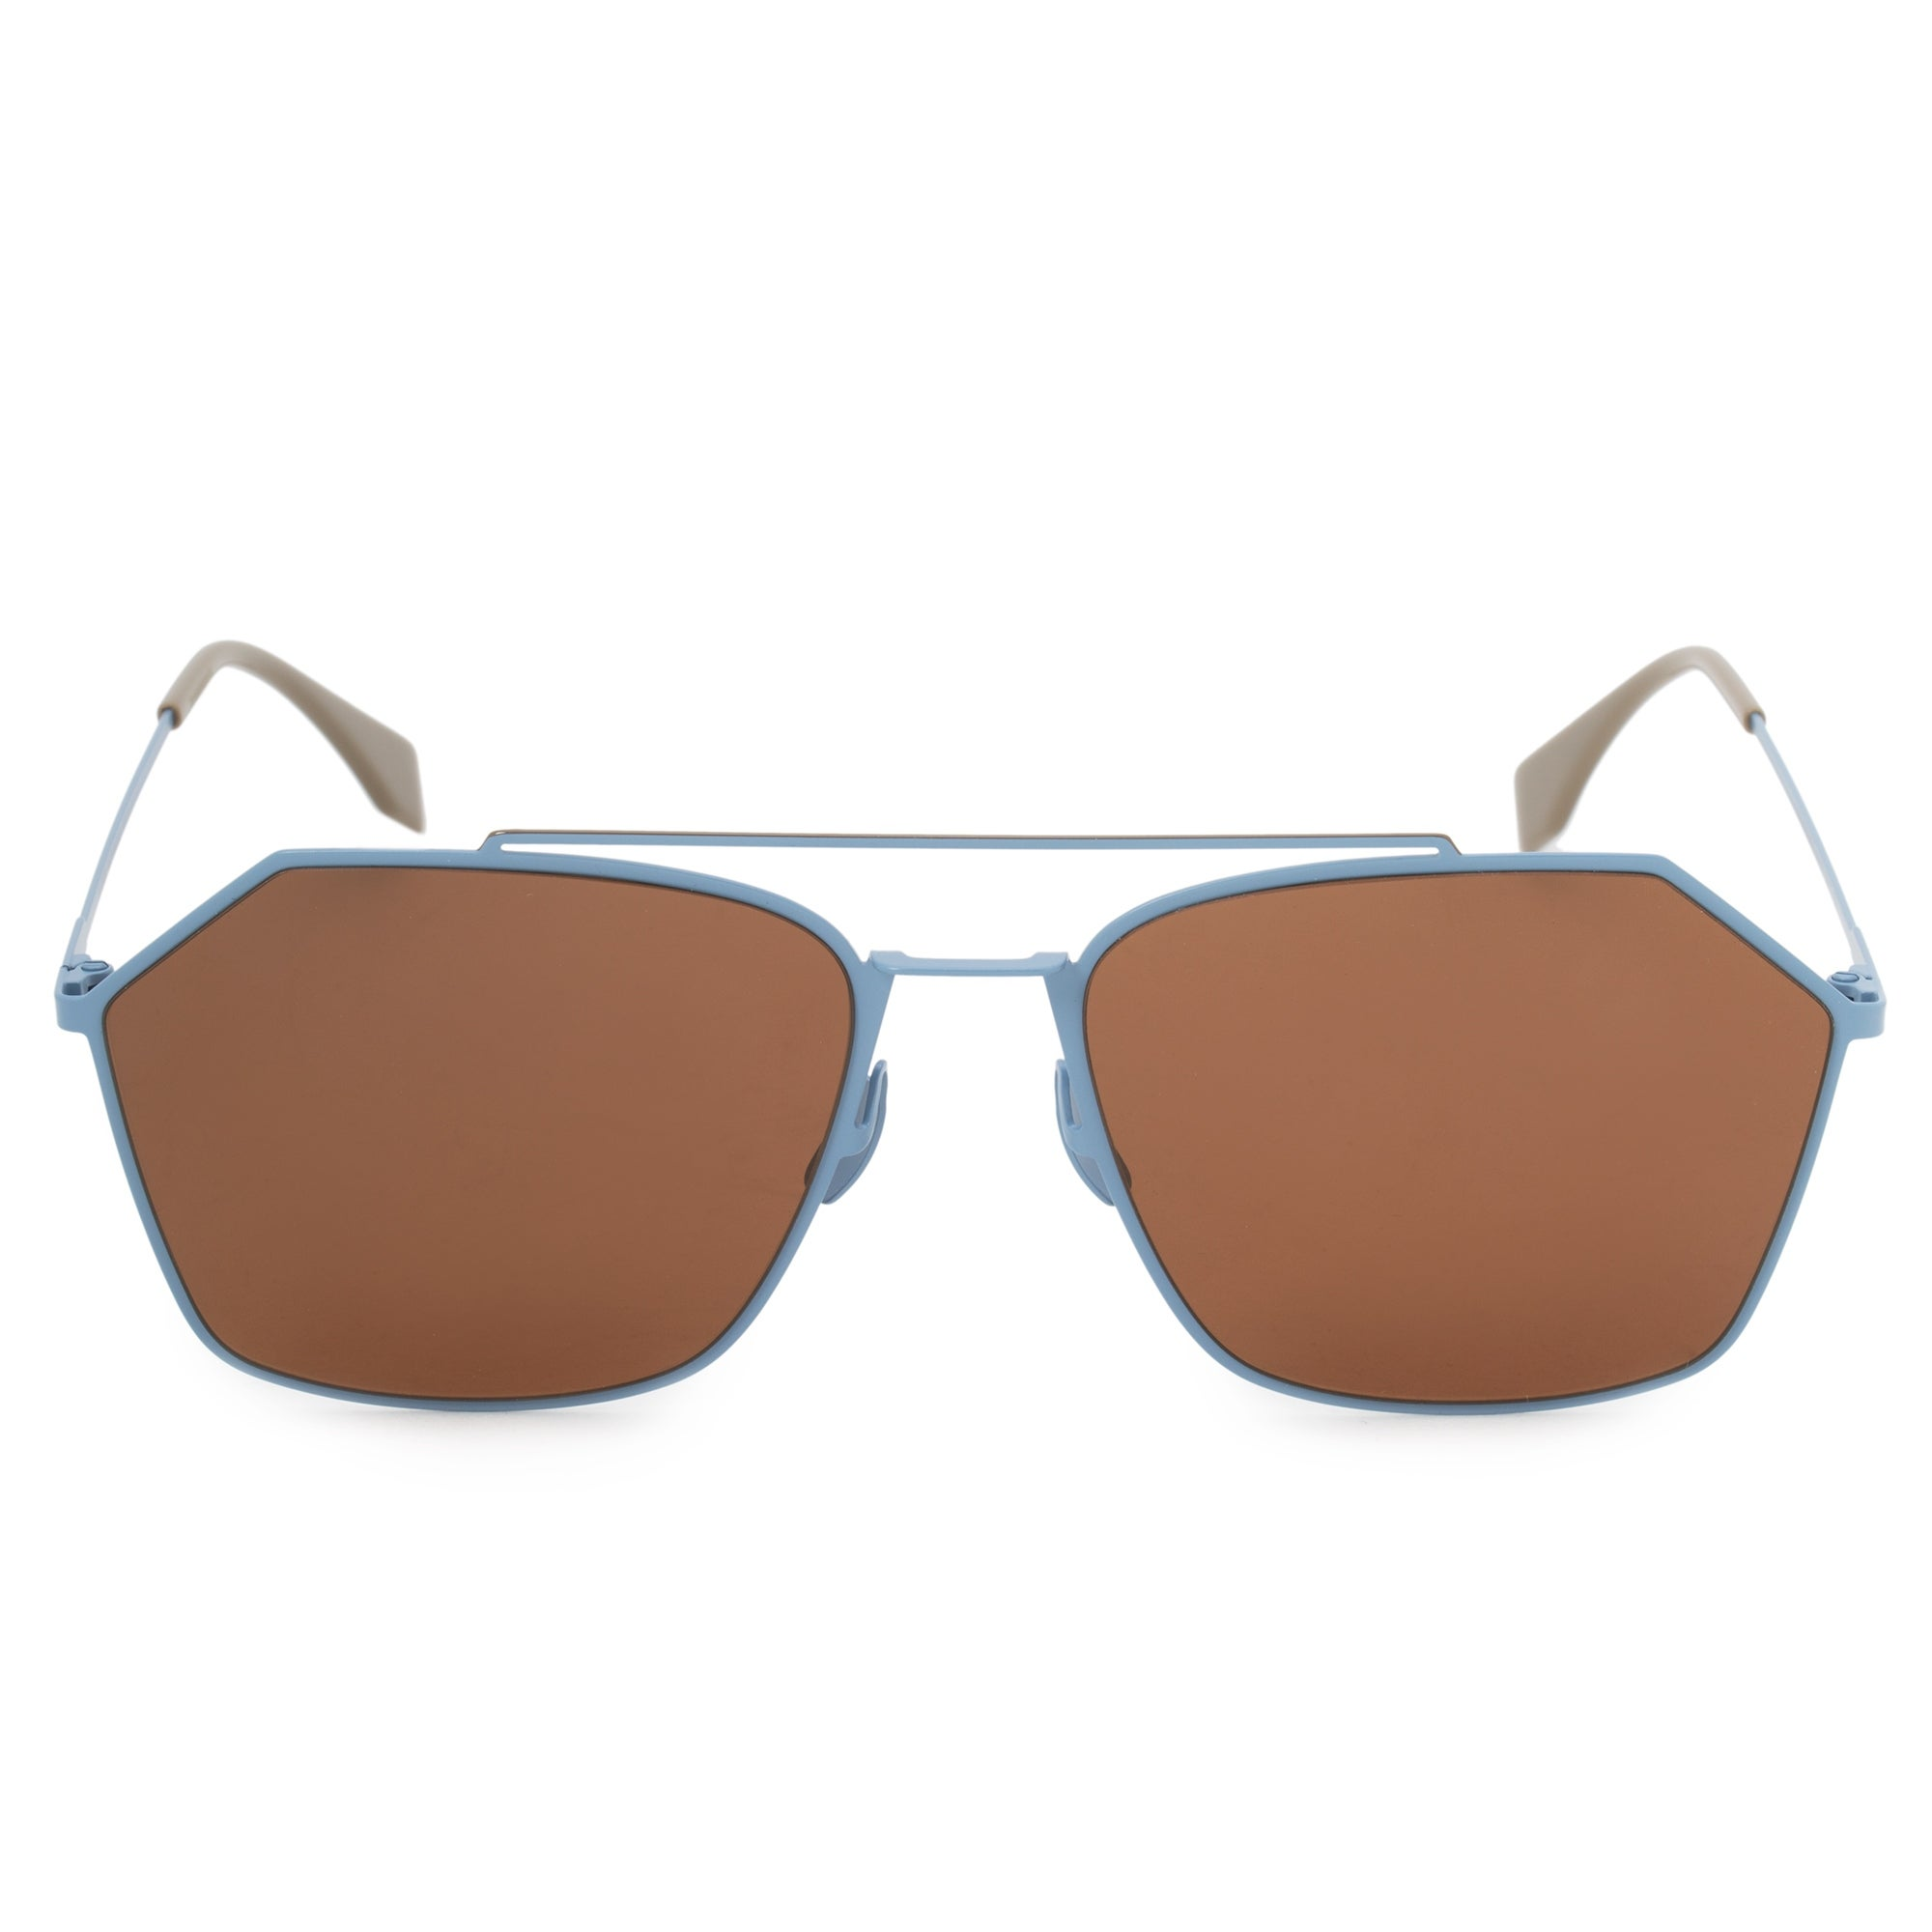 494042051ab Blue Designer Sunglasses